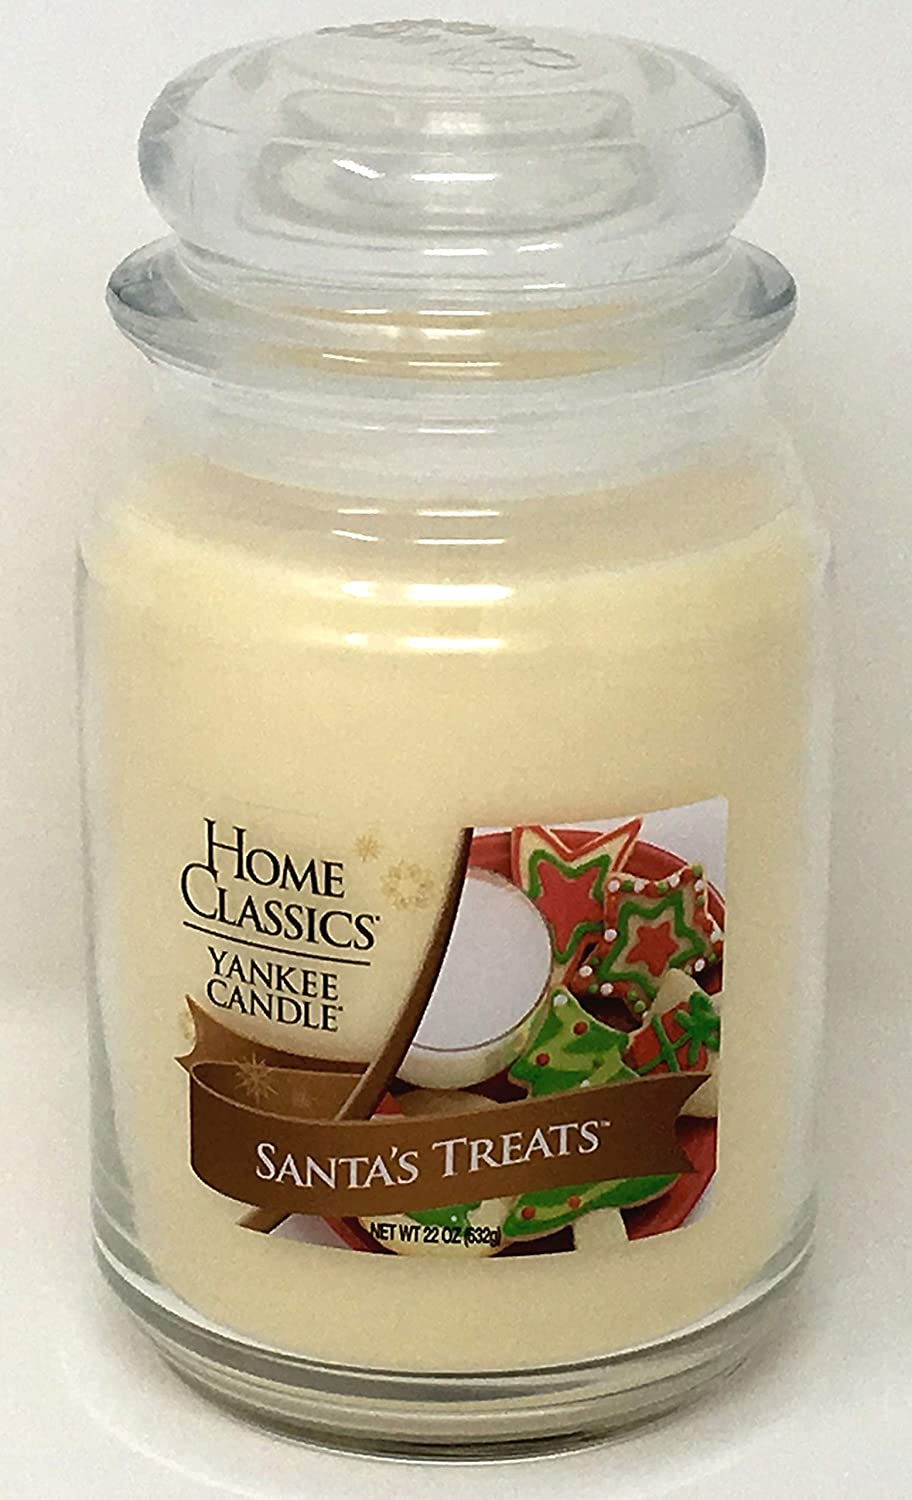 Yankee Candle Home Classics Holiday Santa's Treats Large Single Wick Jar Candle